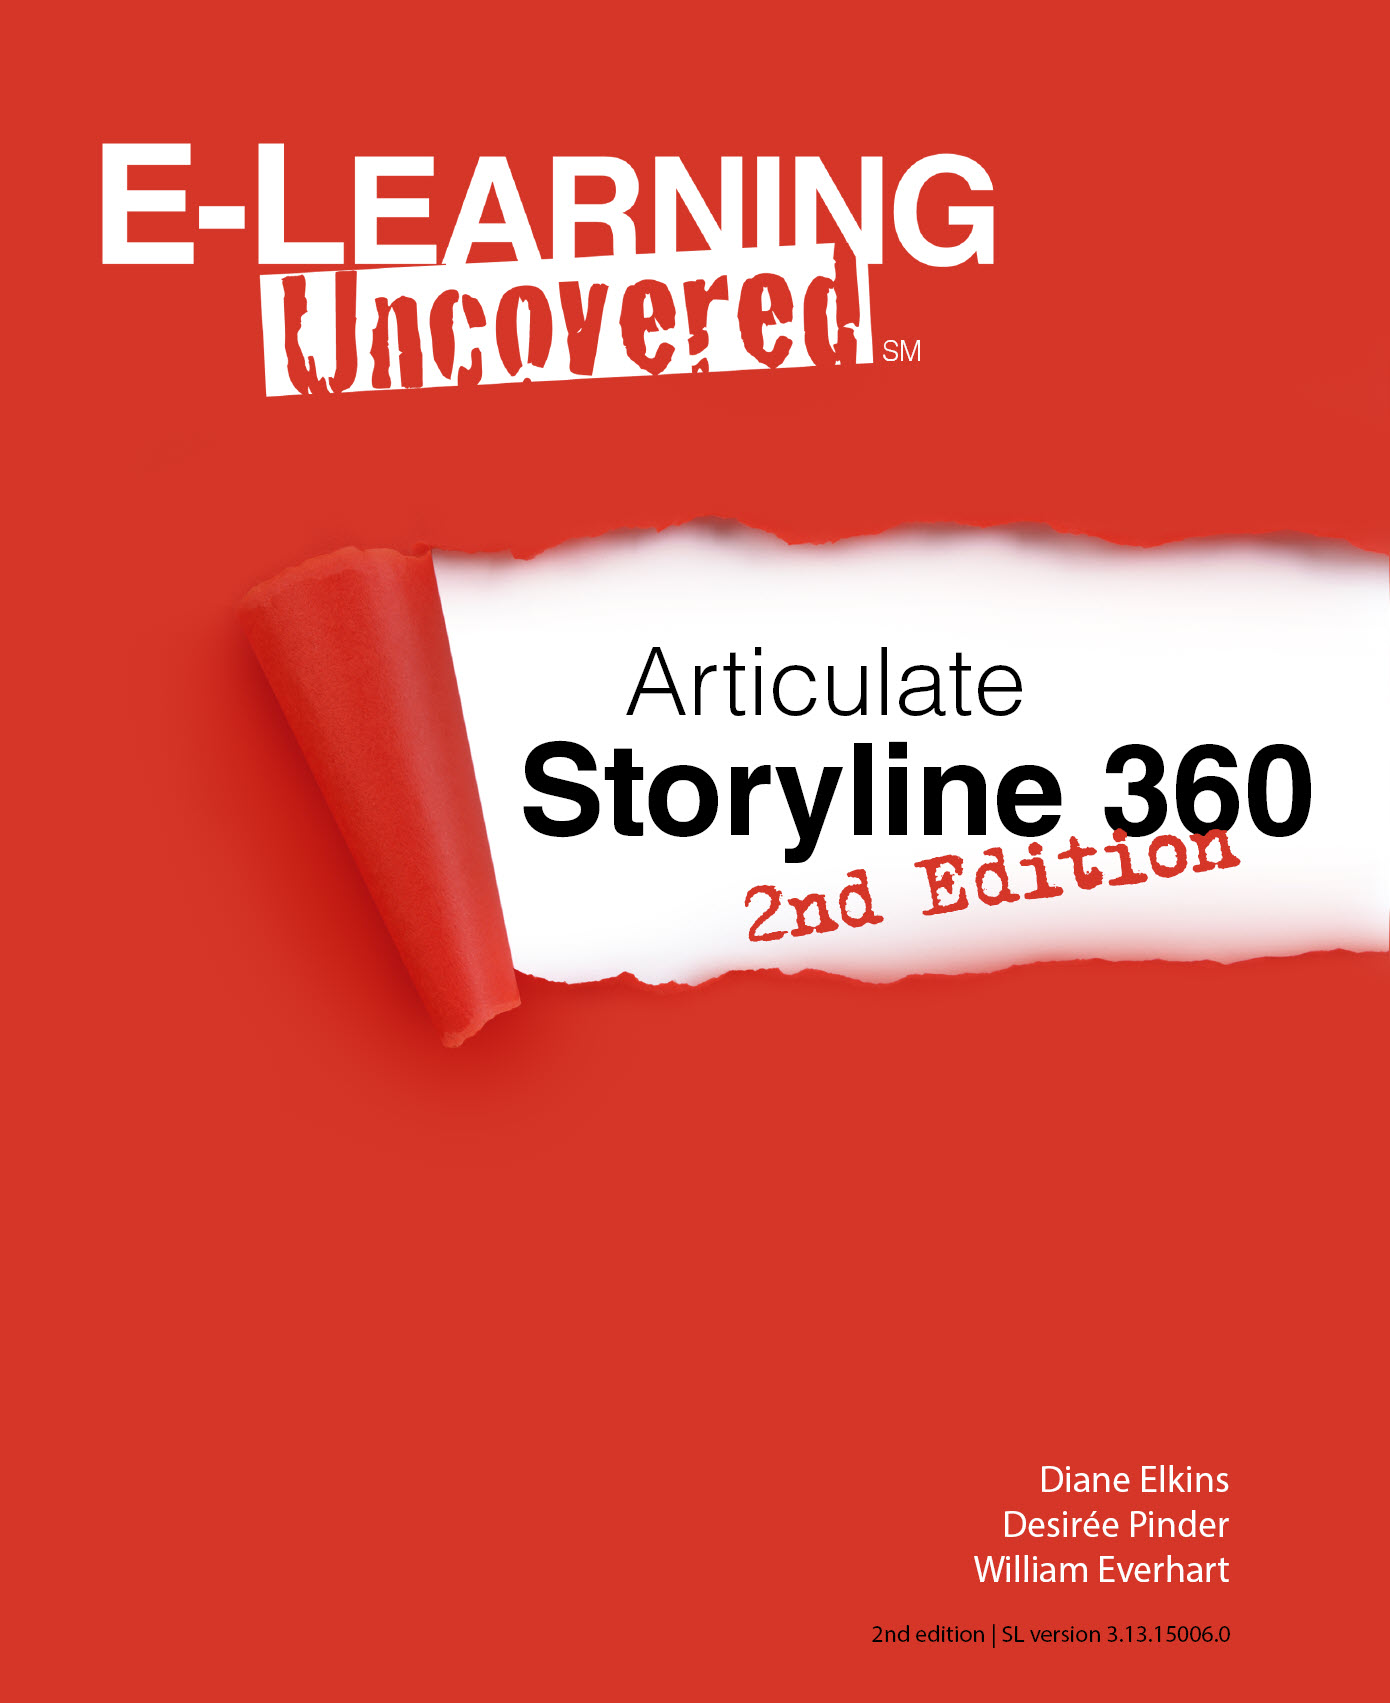 E-Learning Uncovered's Articulate Storyline 360 second edition book